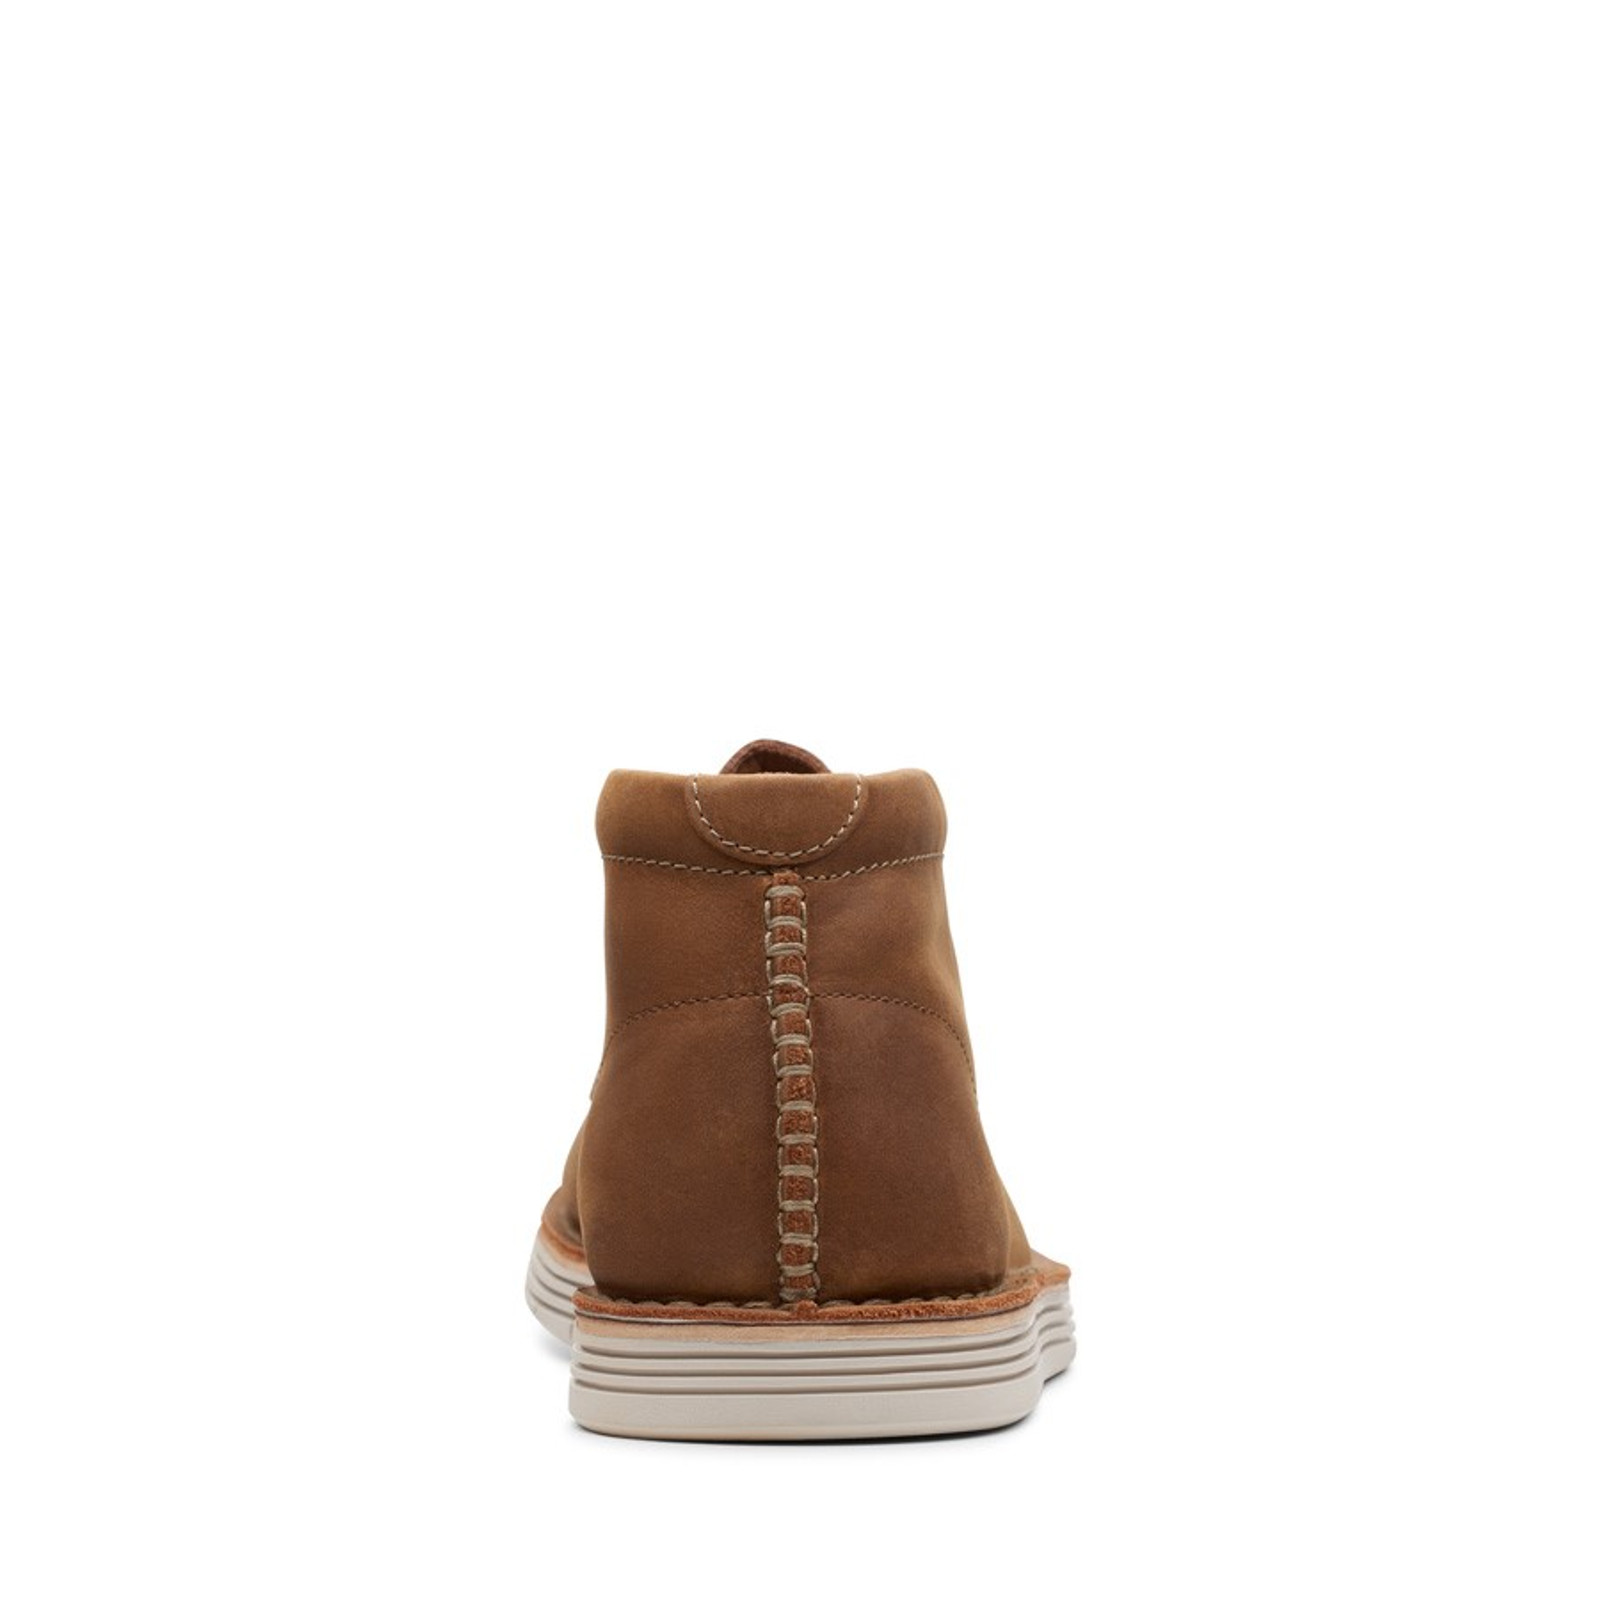 Clarks Mens FORGE STRIDE Tan Leather